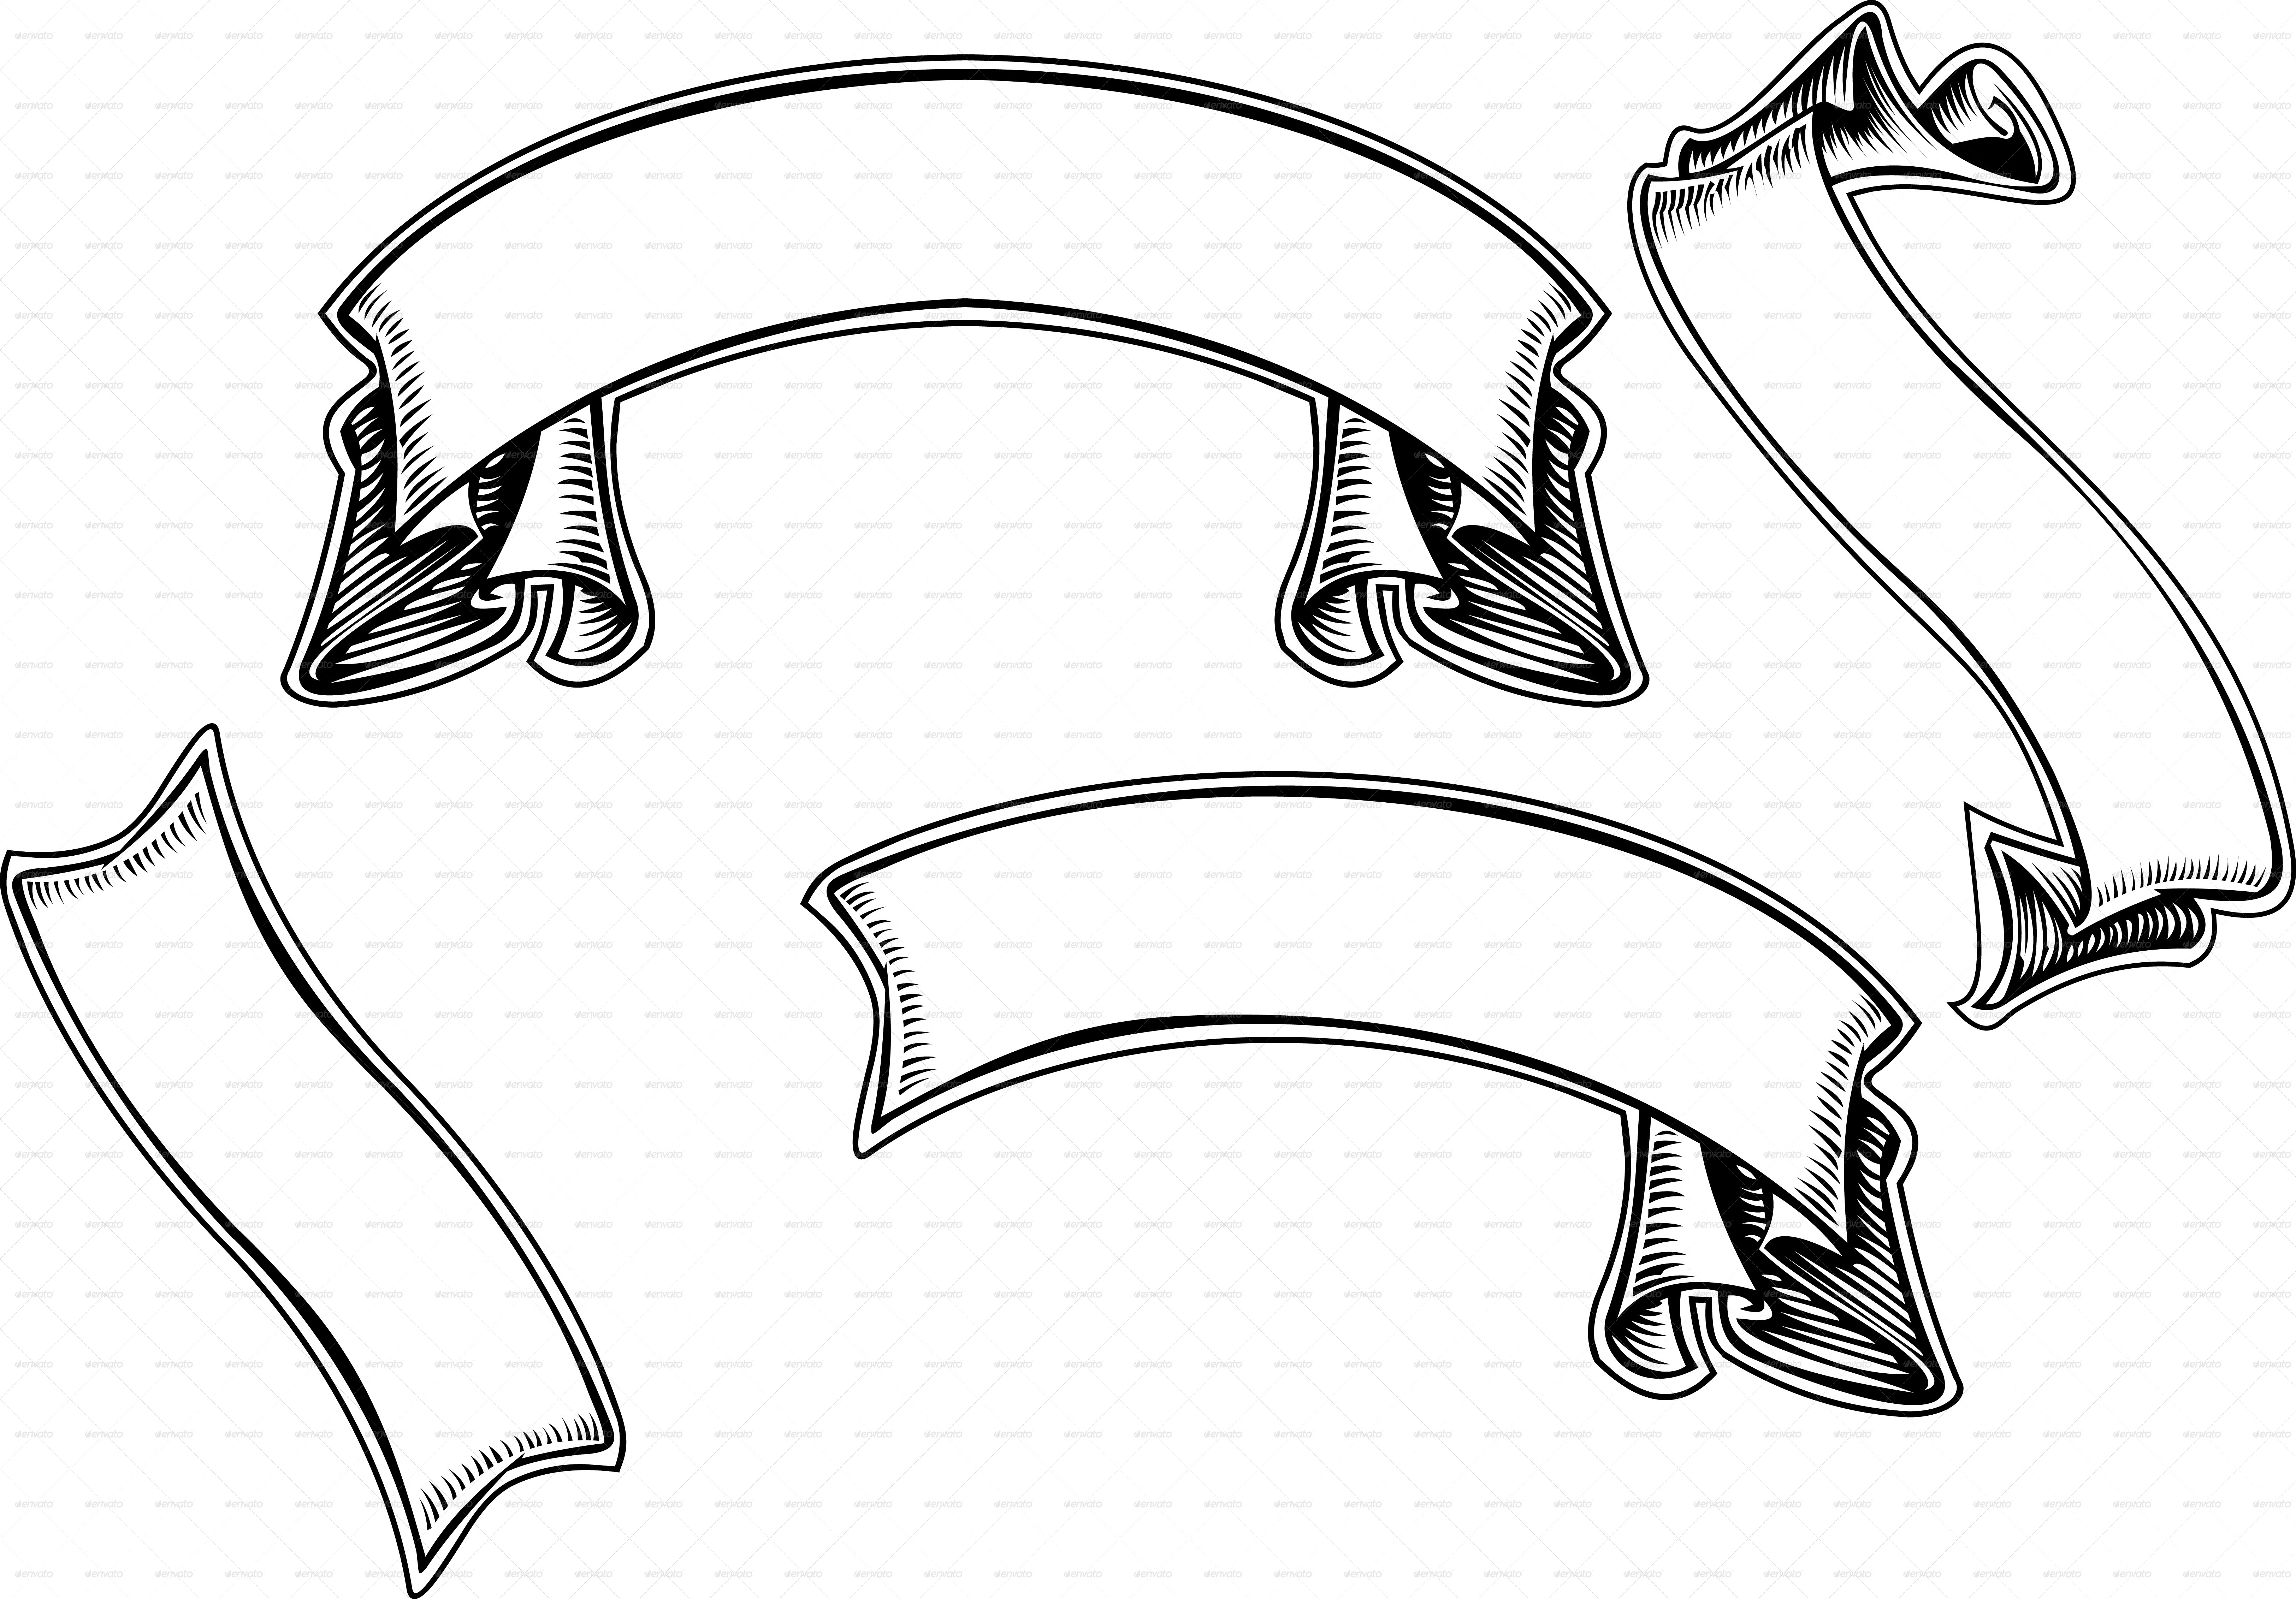 Ribbon scroll clipart vector library stock Free Scroll Banner, Download Free Clip Art, Free Clip Art on ... vector library stock